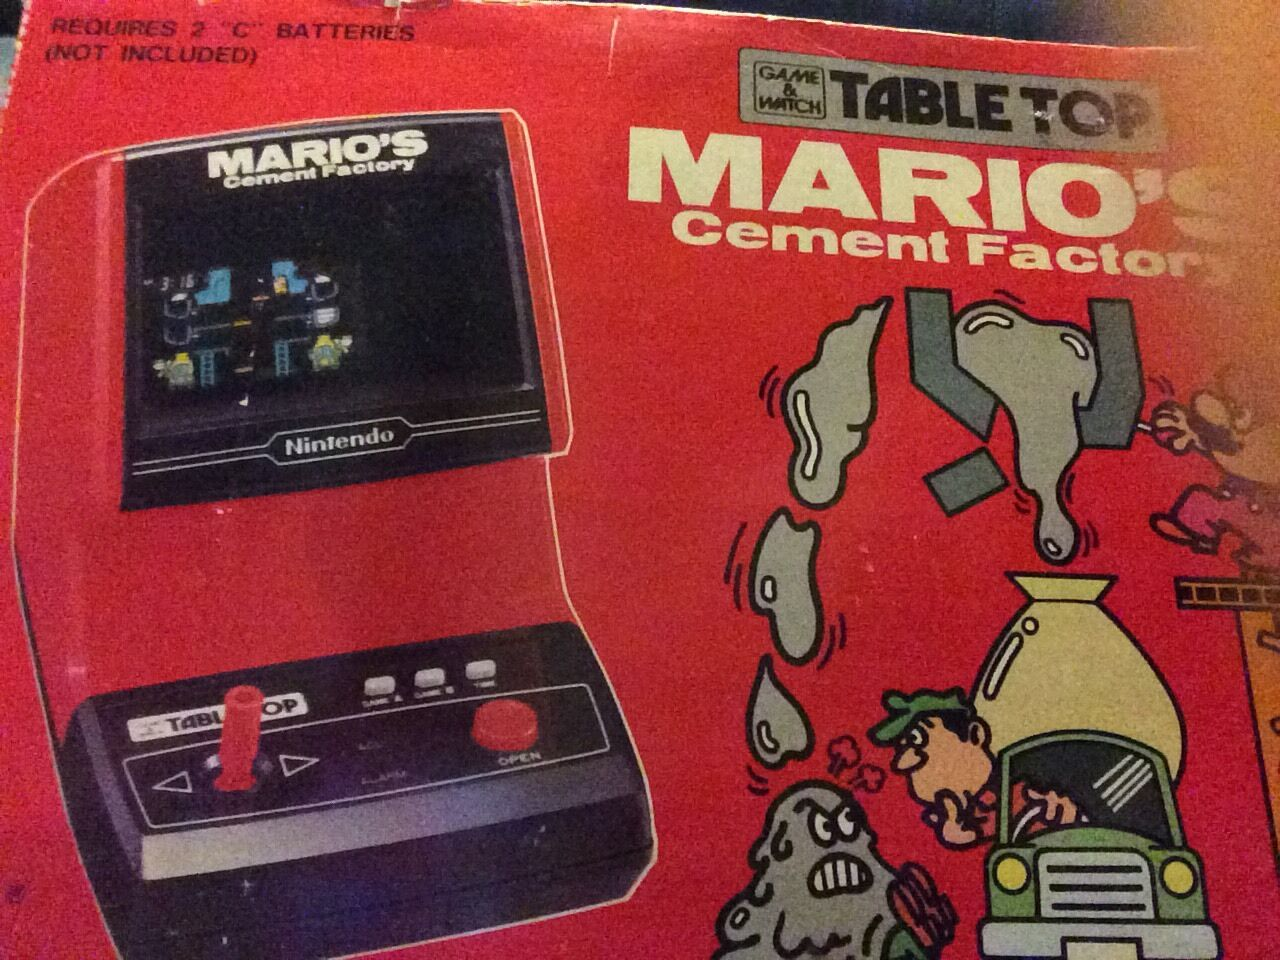 VINTAGE Mario's Cement Factory Tabletop Game & Watch, Amazing Condition, In Box